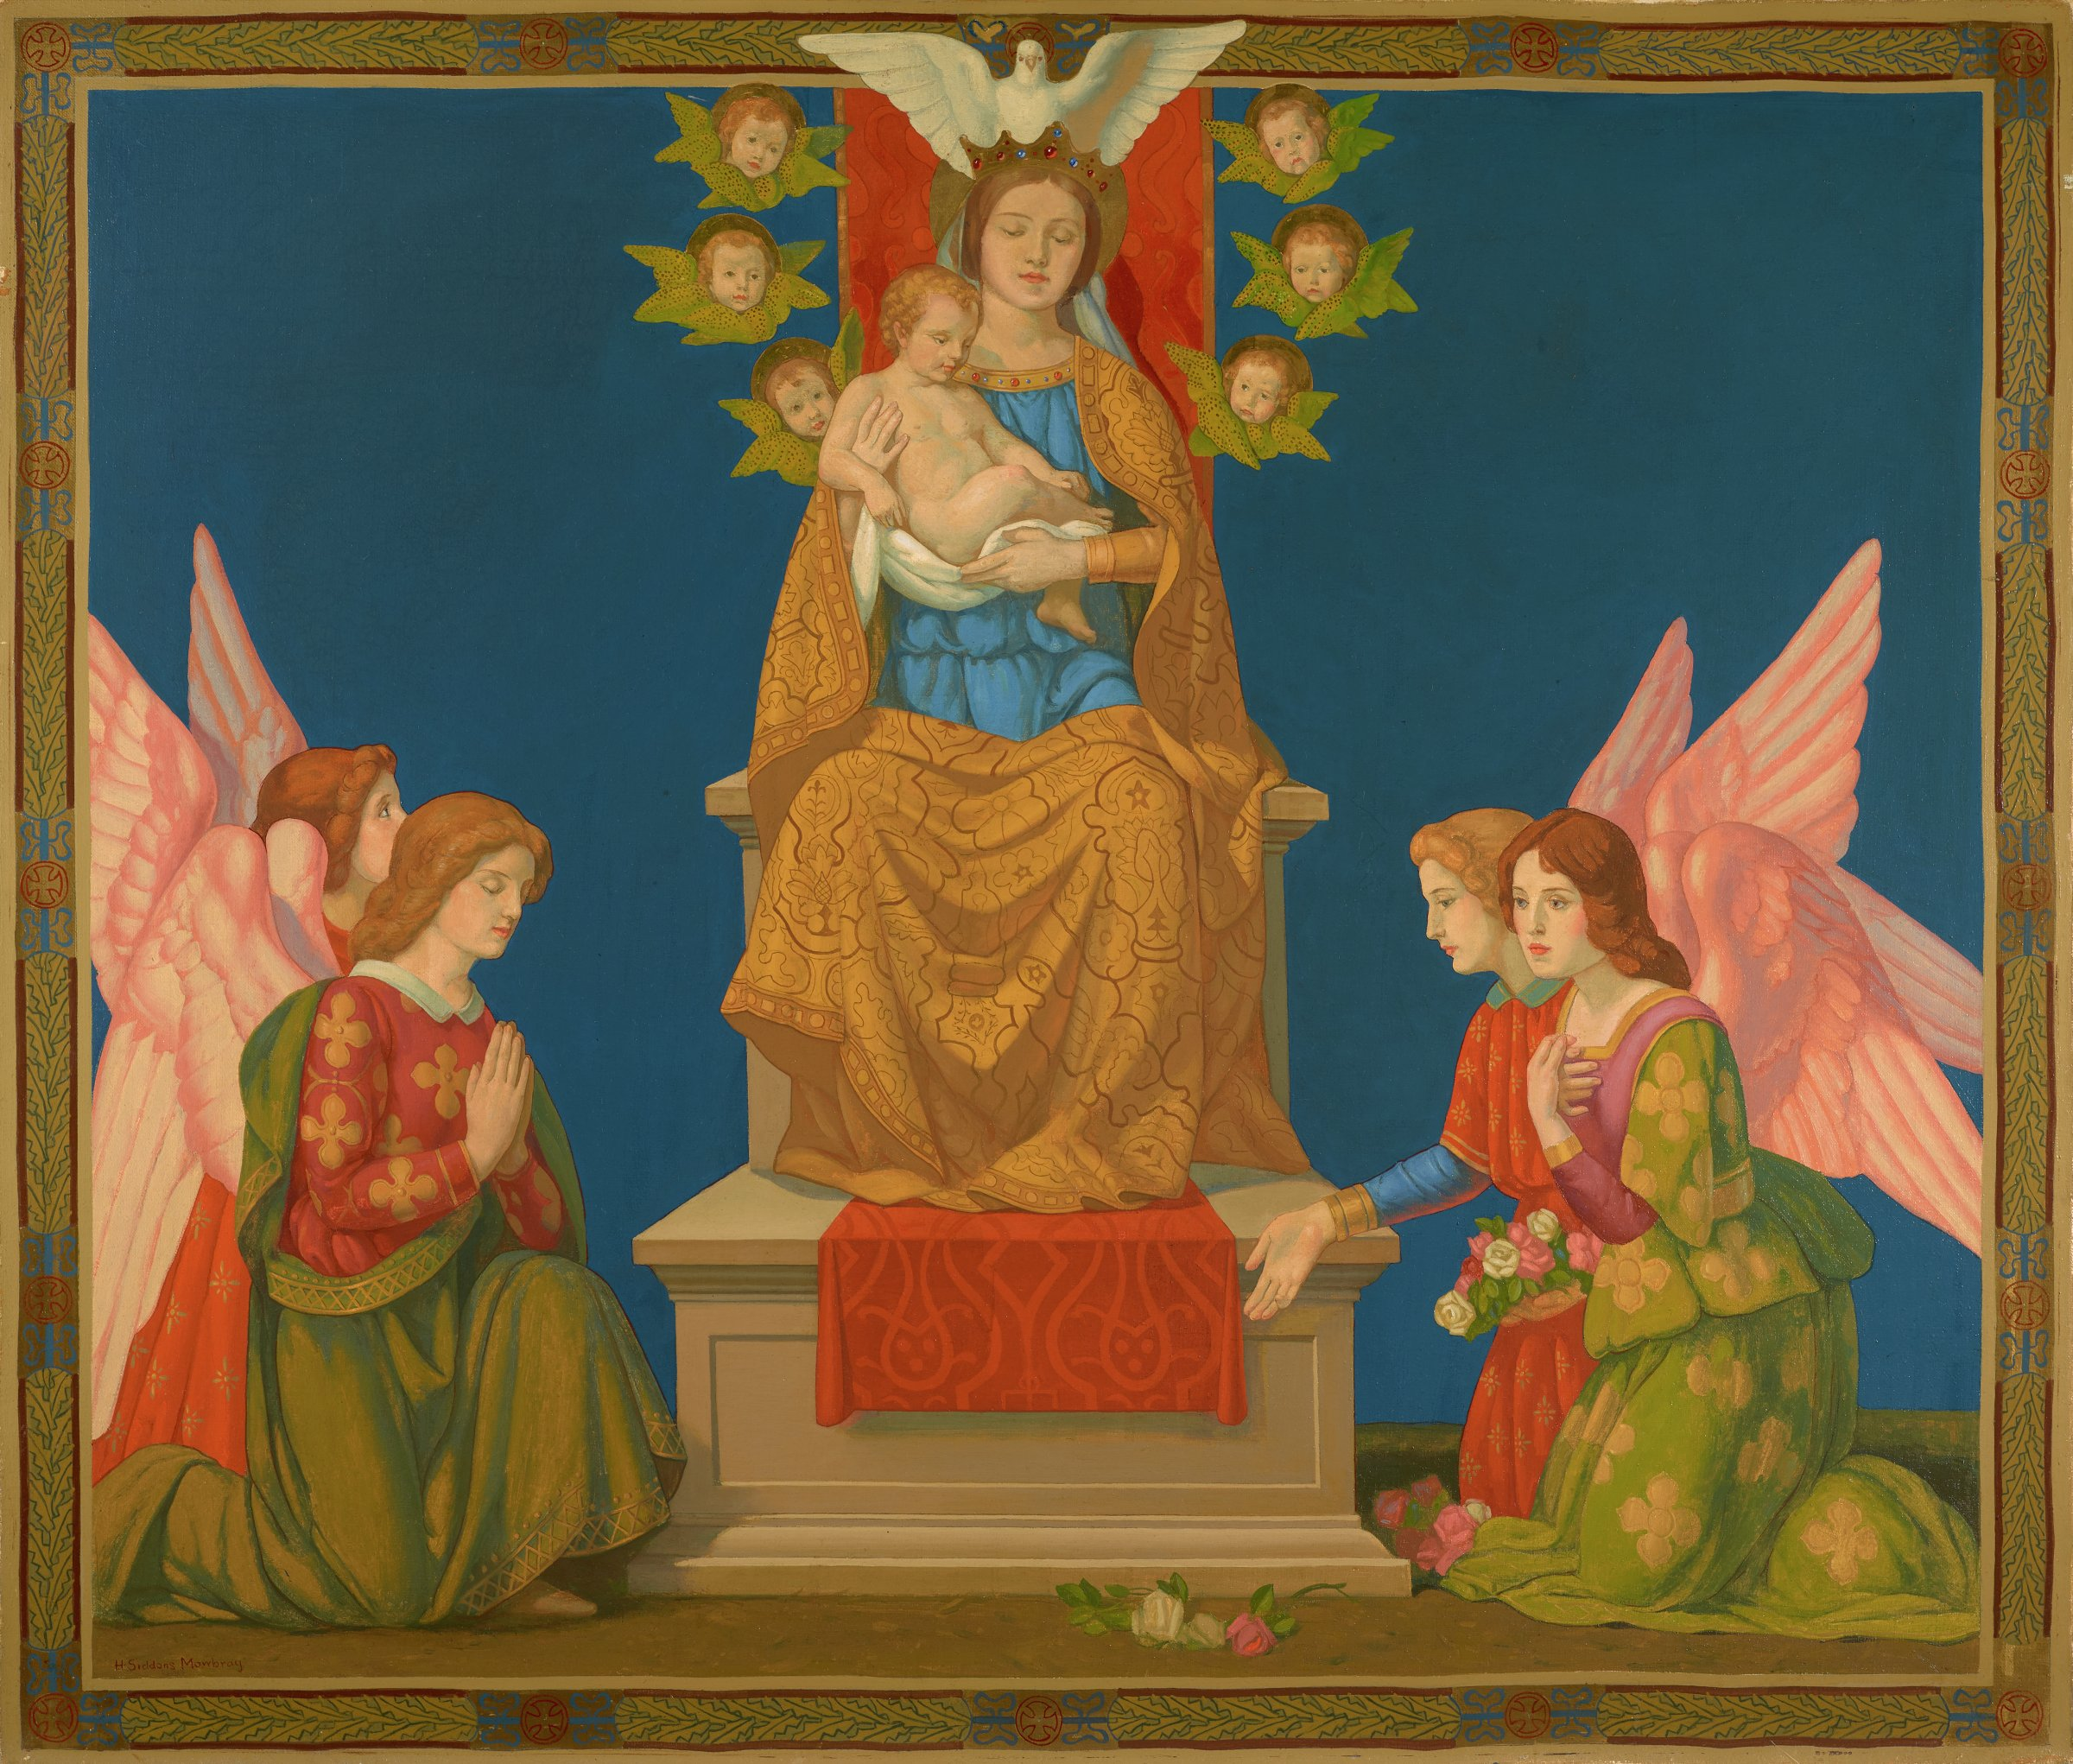 Madonna and Child Enthroned with Angels and Cherubs, Henry Siddons Mowbray, oil on canvas